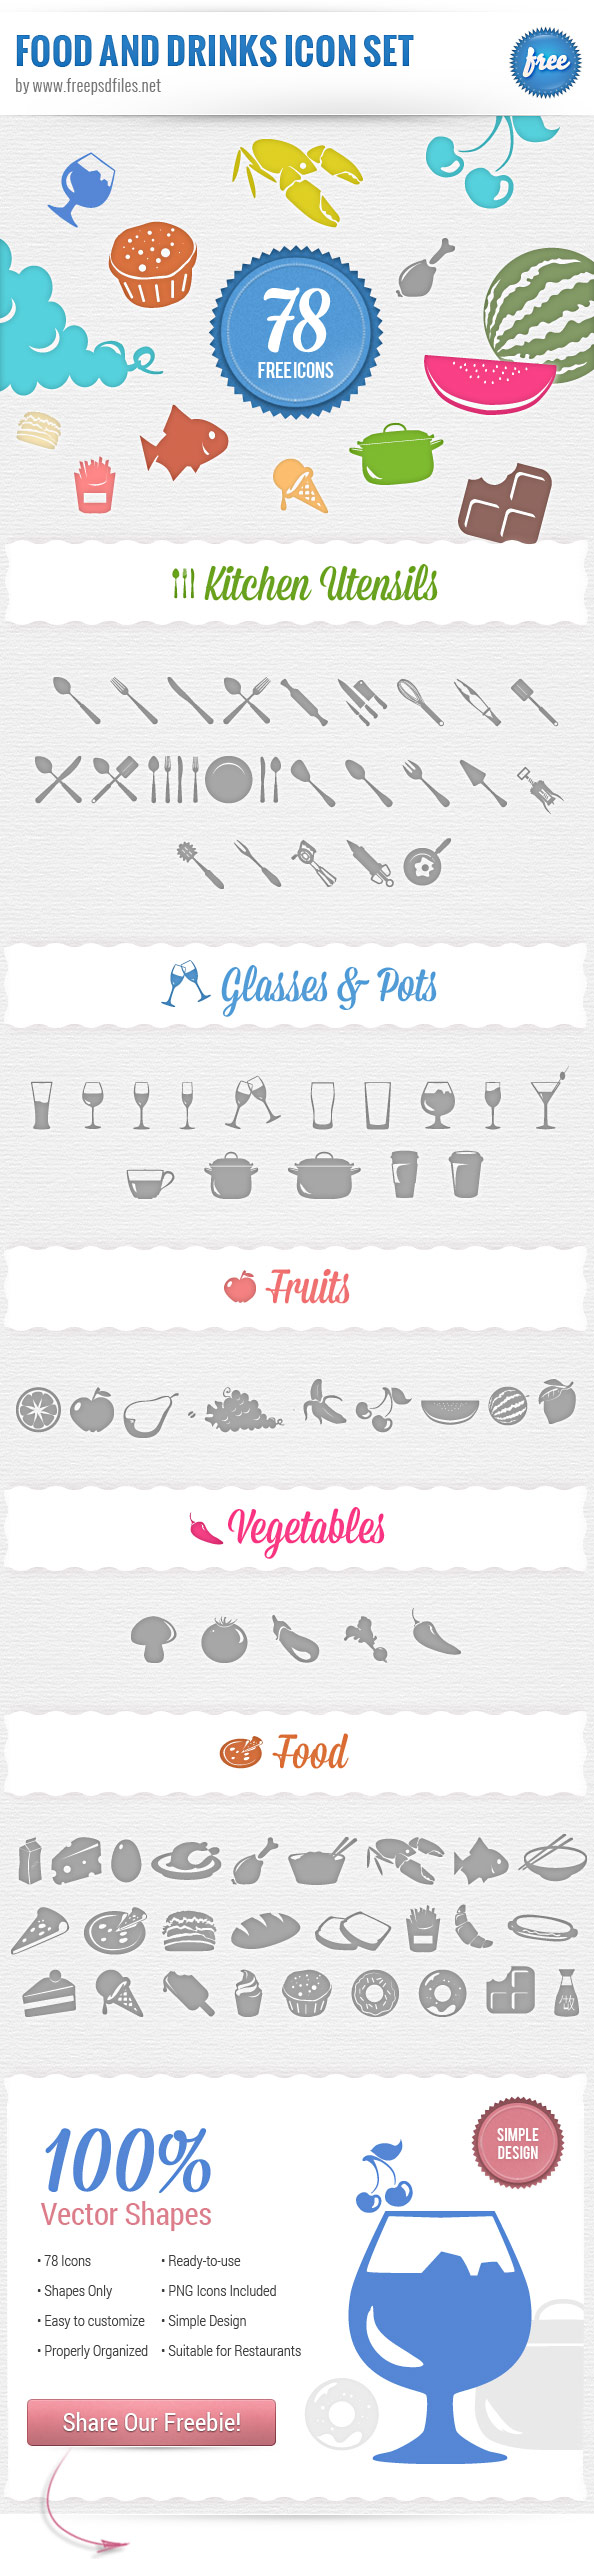 12 Food Icons PSD Images